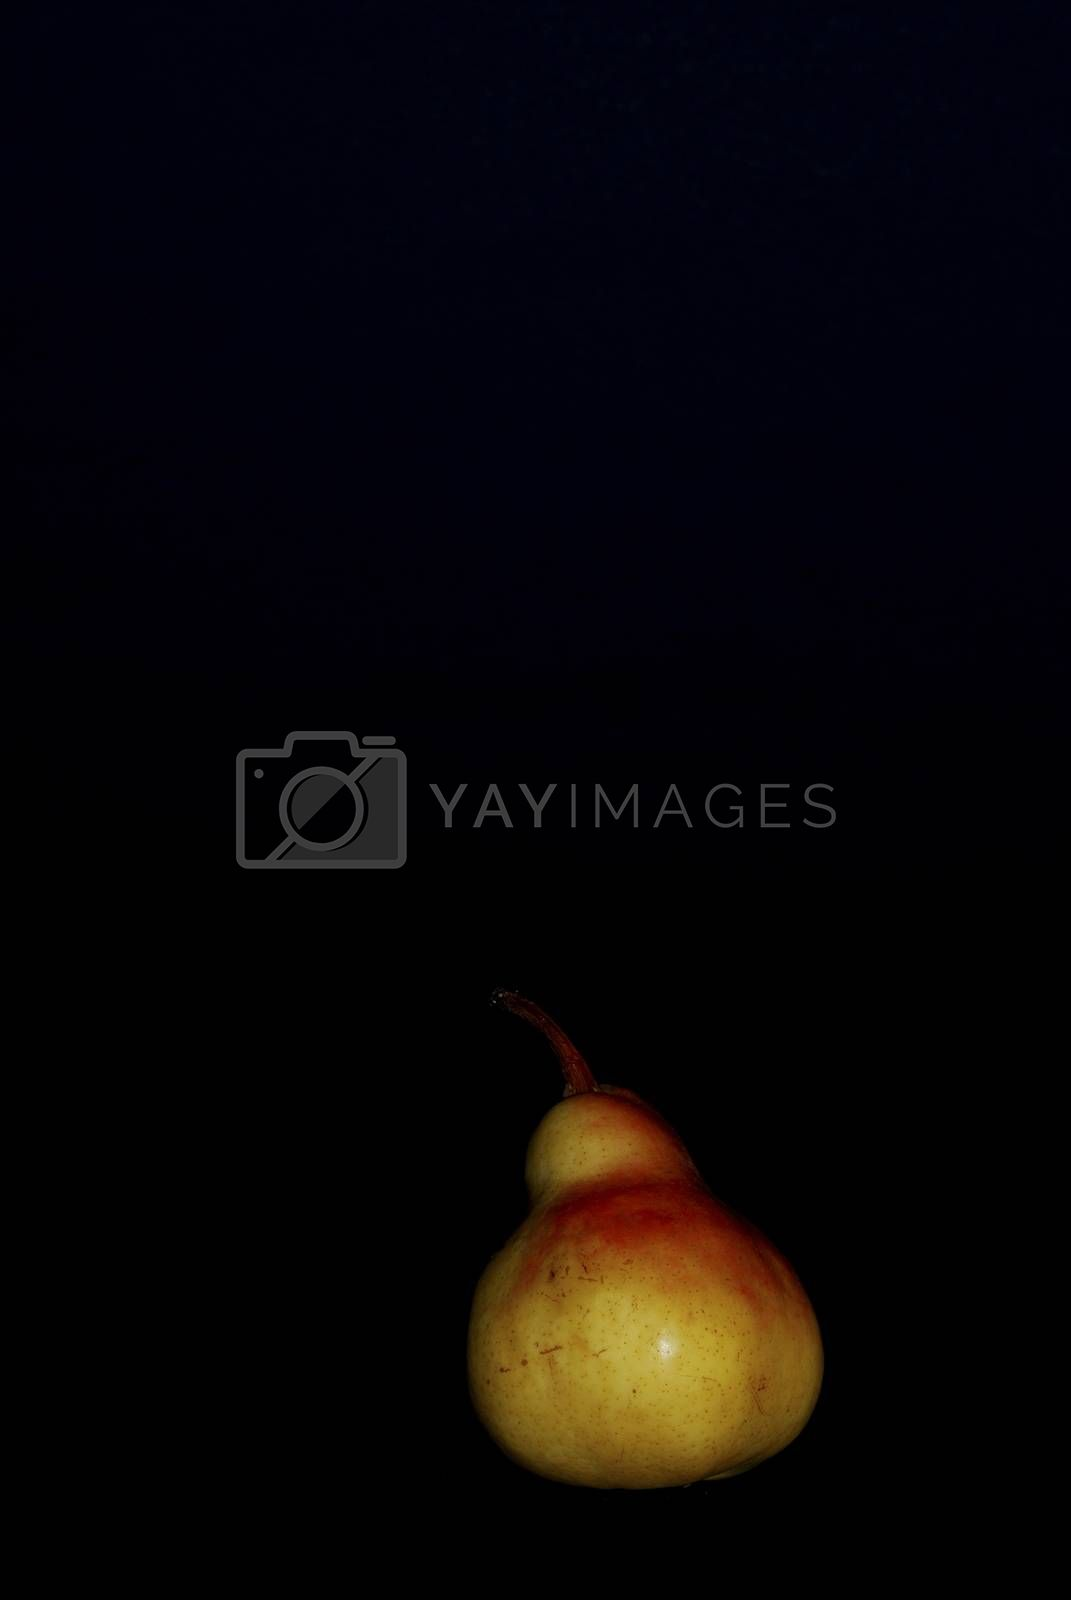 juicy fresh pear with black background portrait